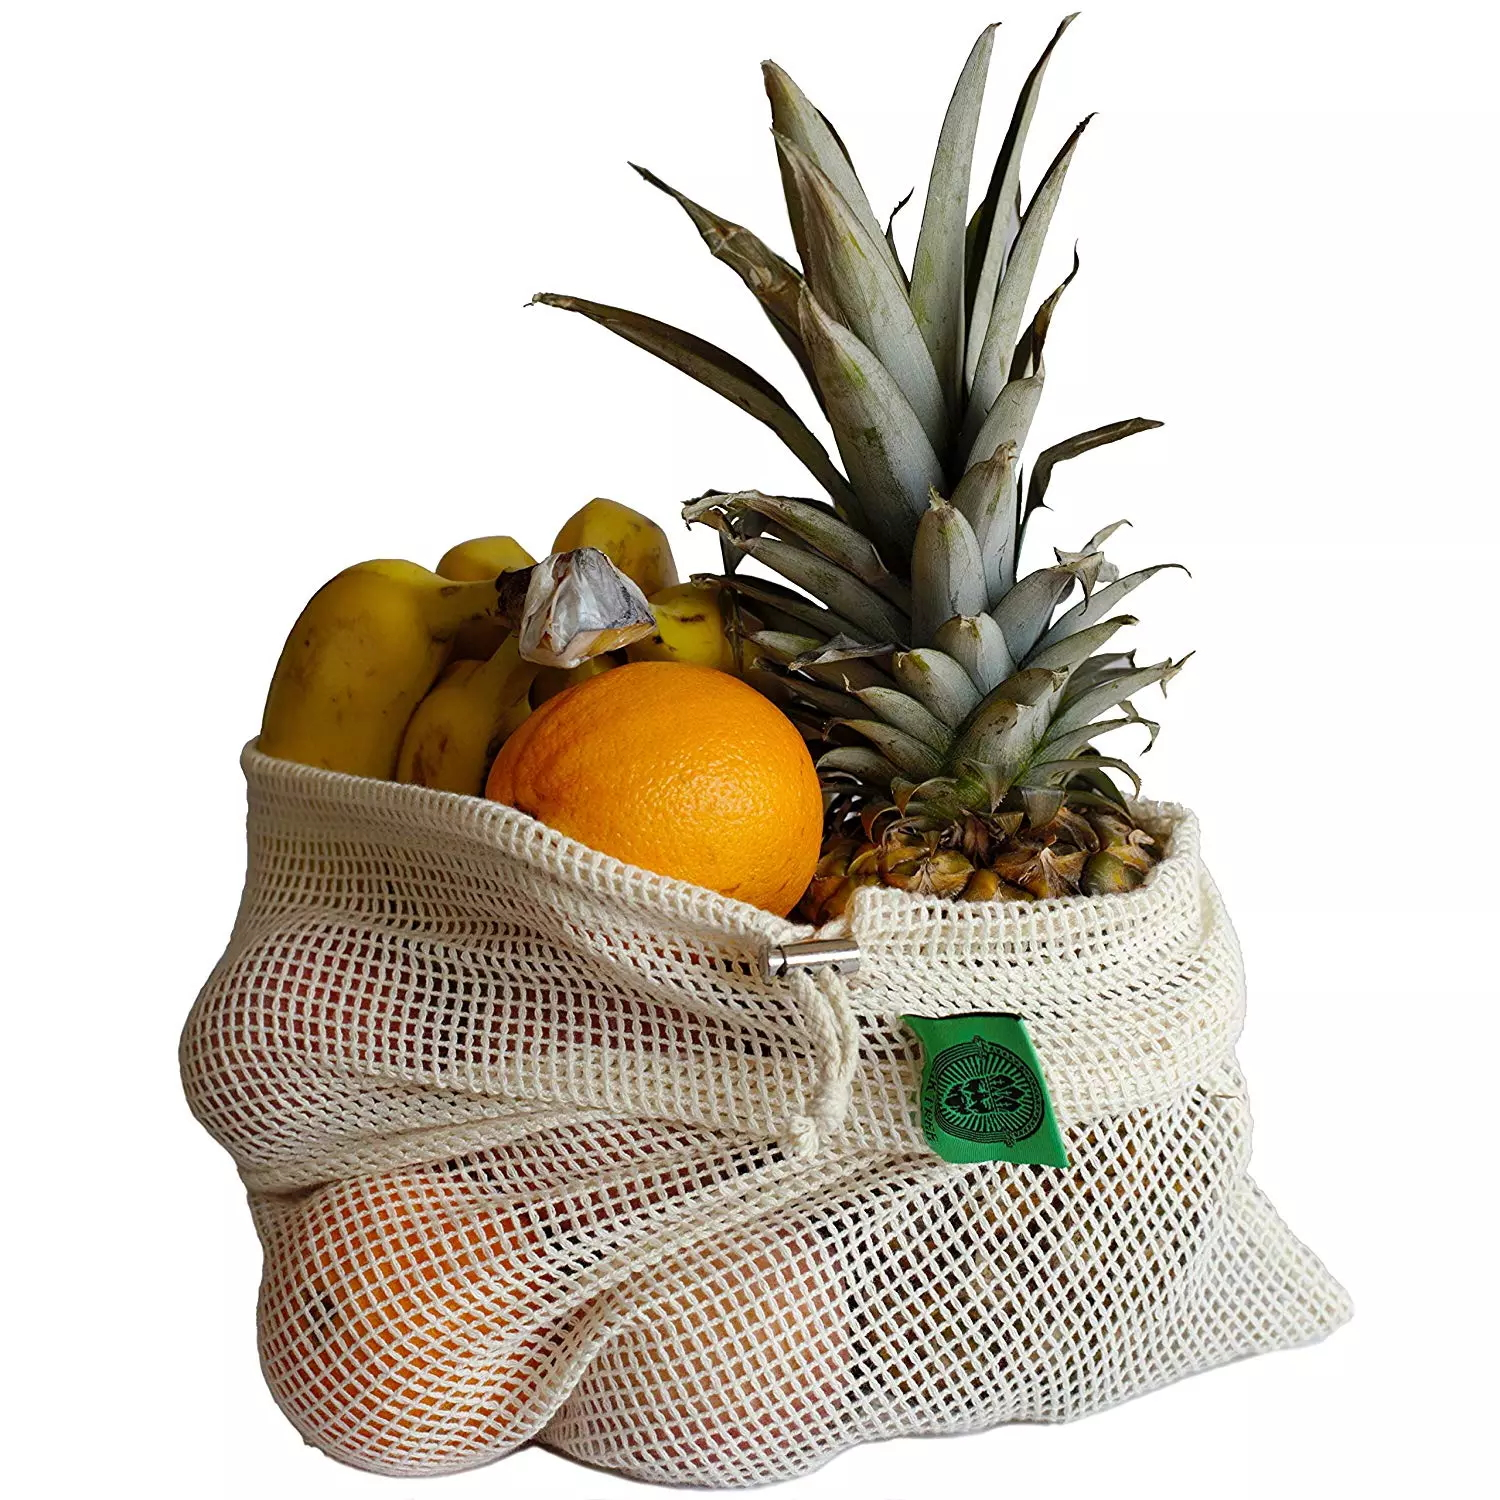 Reusable Beeswax Wrap and Mesh Produce Bag Bundle - 3 Pack Food Storage Wrap +3 Mesh Produce  Bags - Eco-Friendly, Plastic free